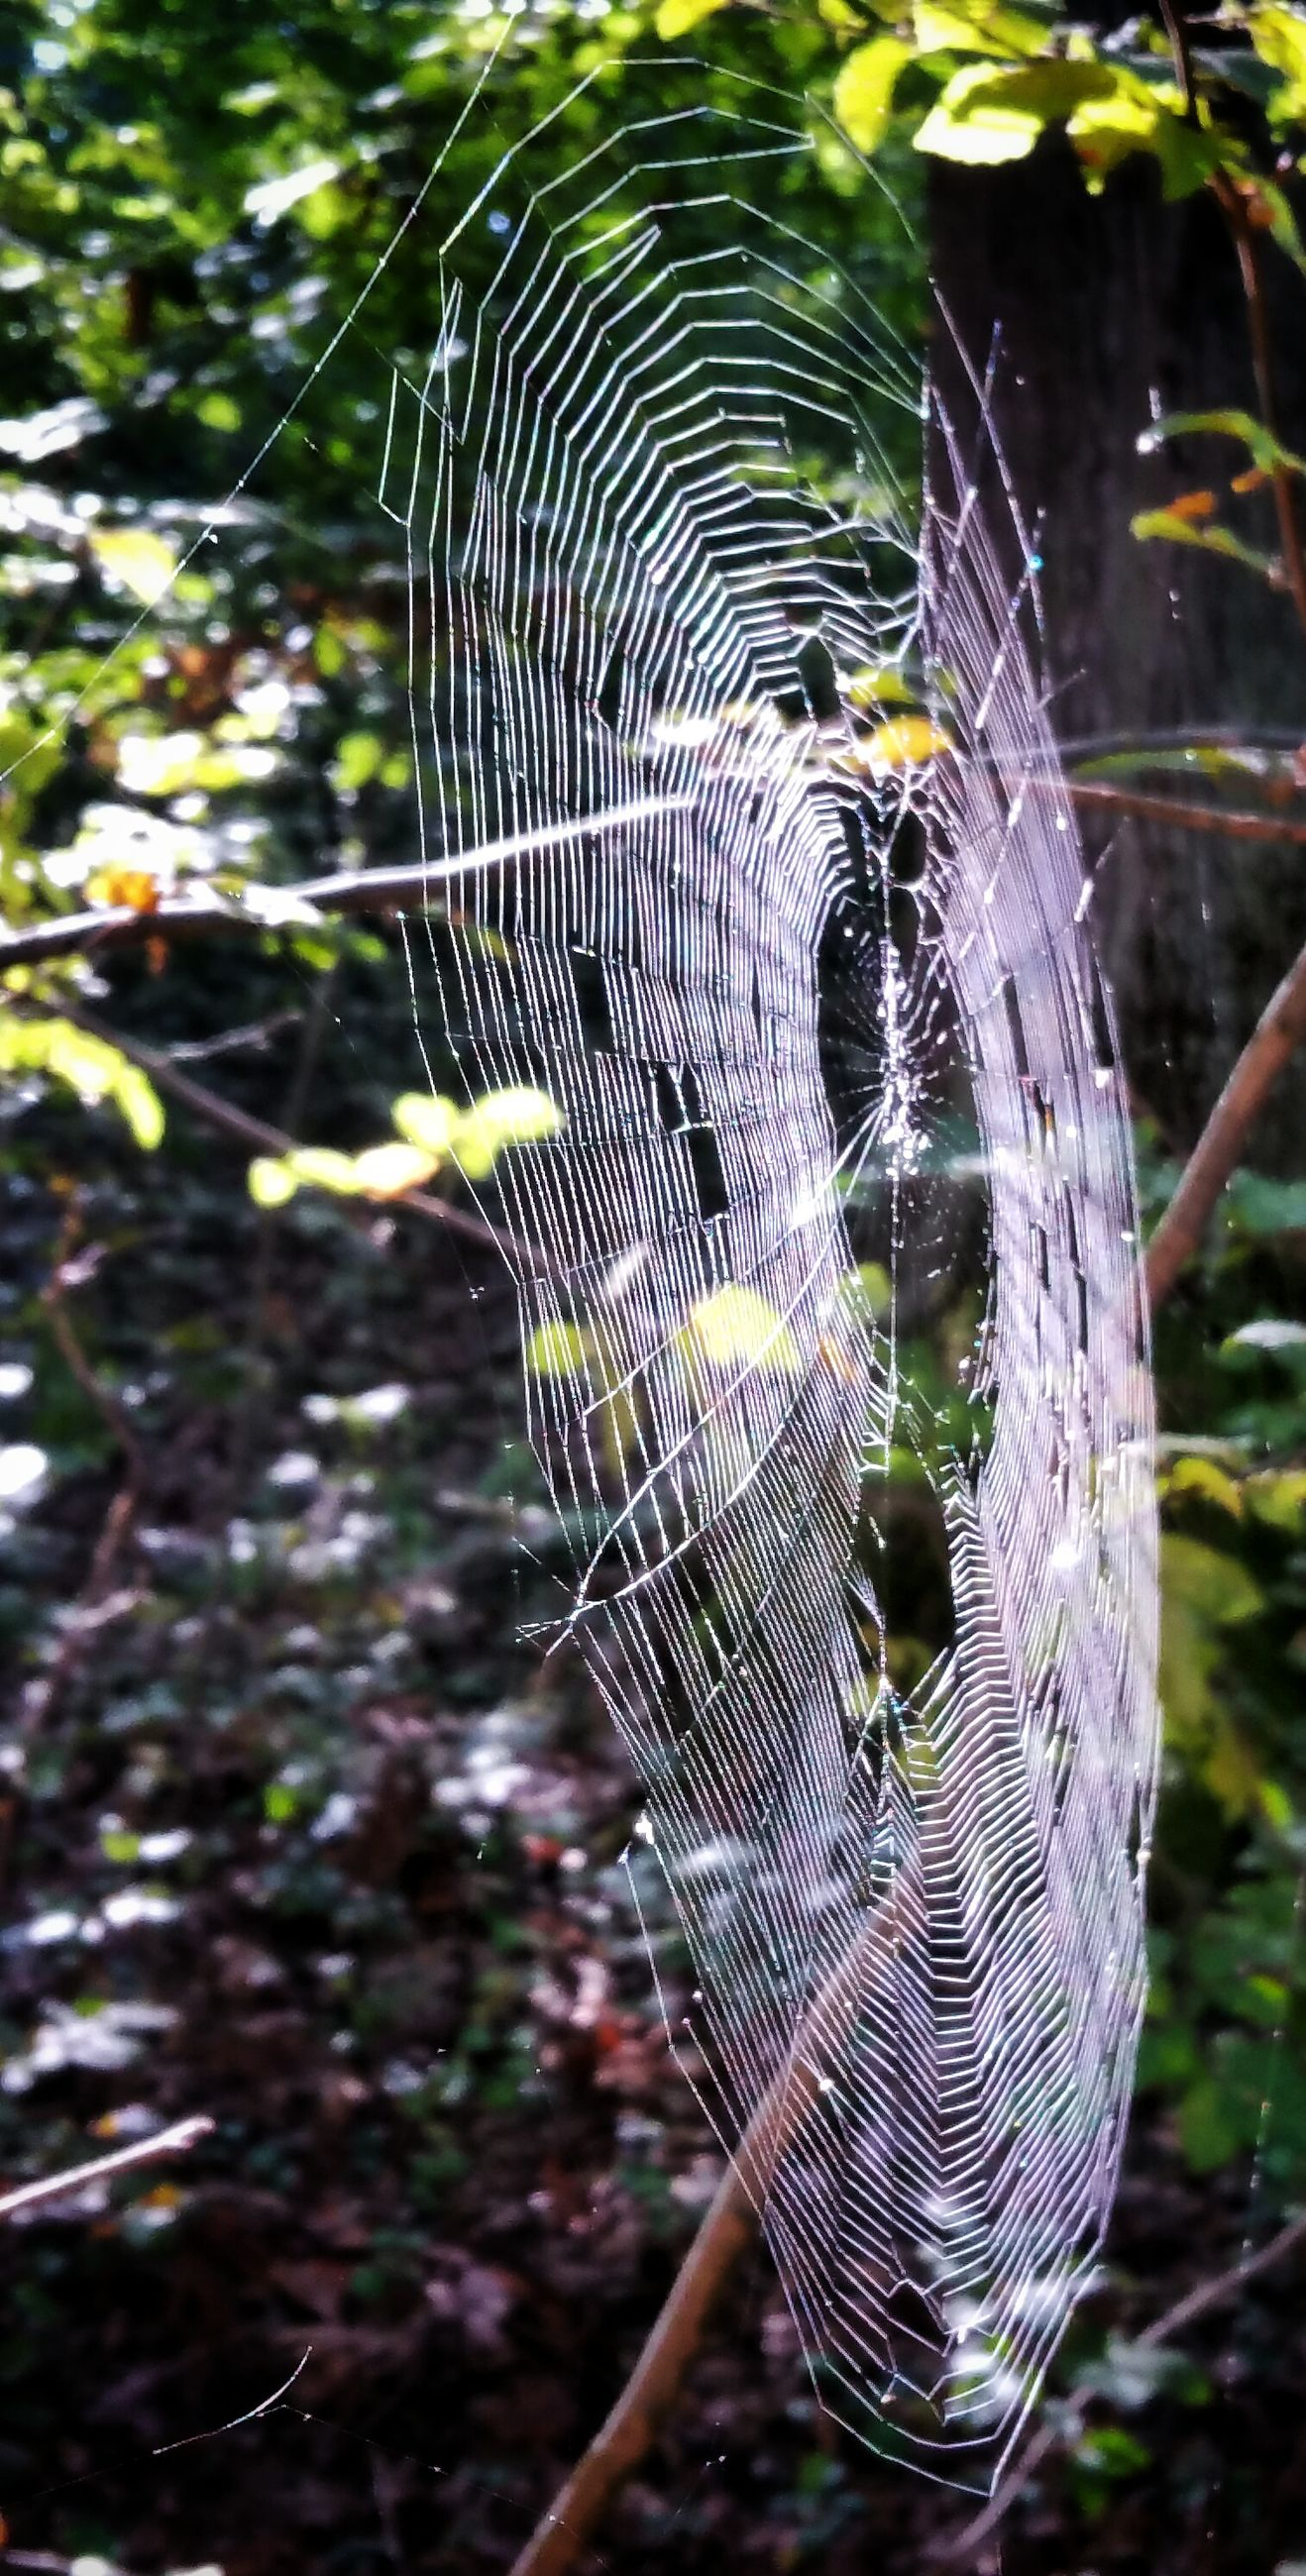 close-up, spider web, focus on foreground, natural pattern, trapped, fragility, detail, nature, day, cob web, zoology, green color, intricacy, selective focus, beauty in nature, branch, complexity, growth, full frame, outdoors, animal markings, bright, no people, tranquility, spiderweb, scenics